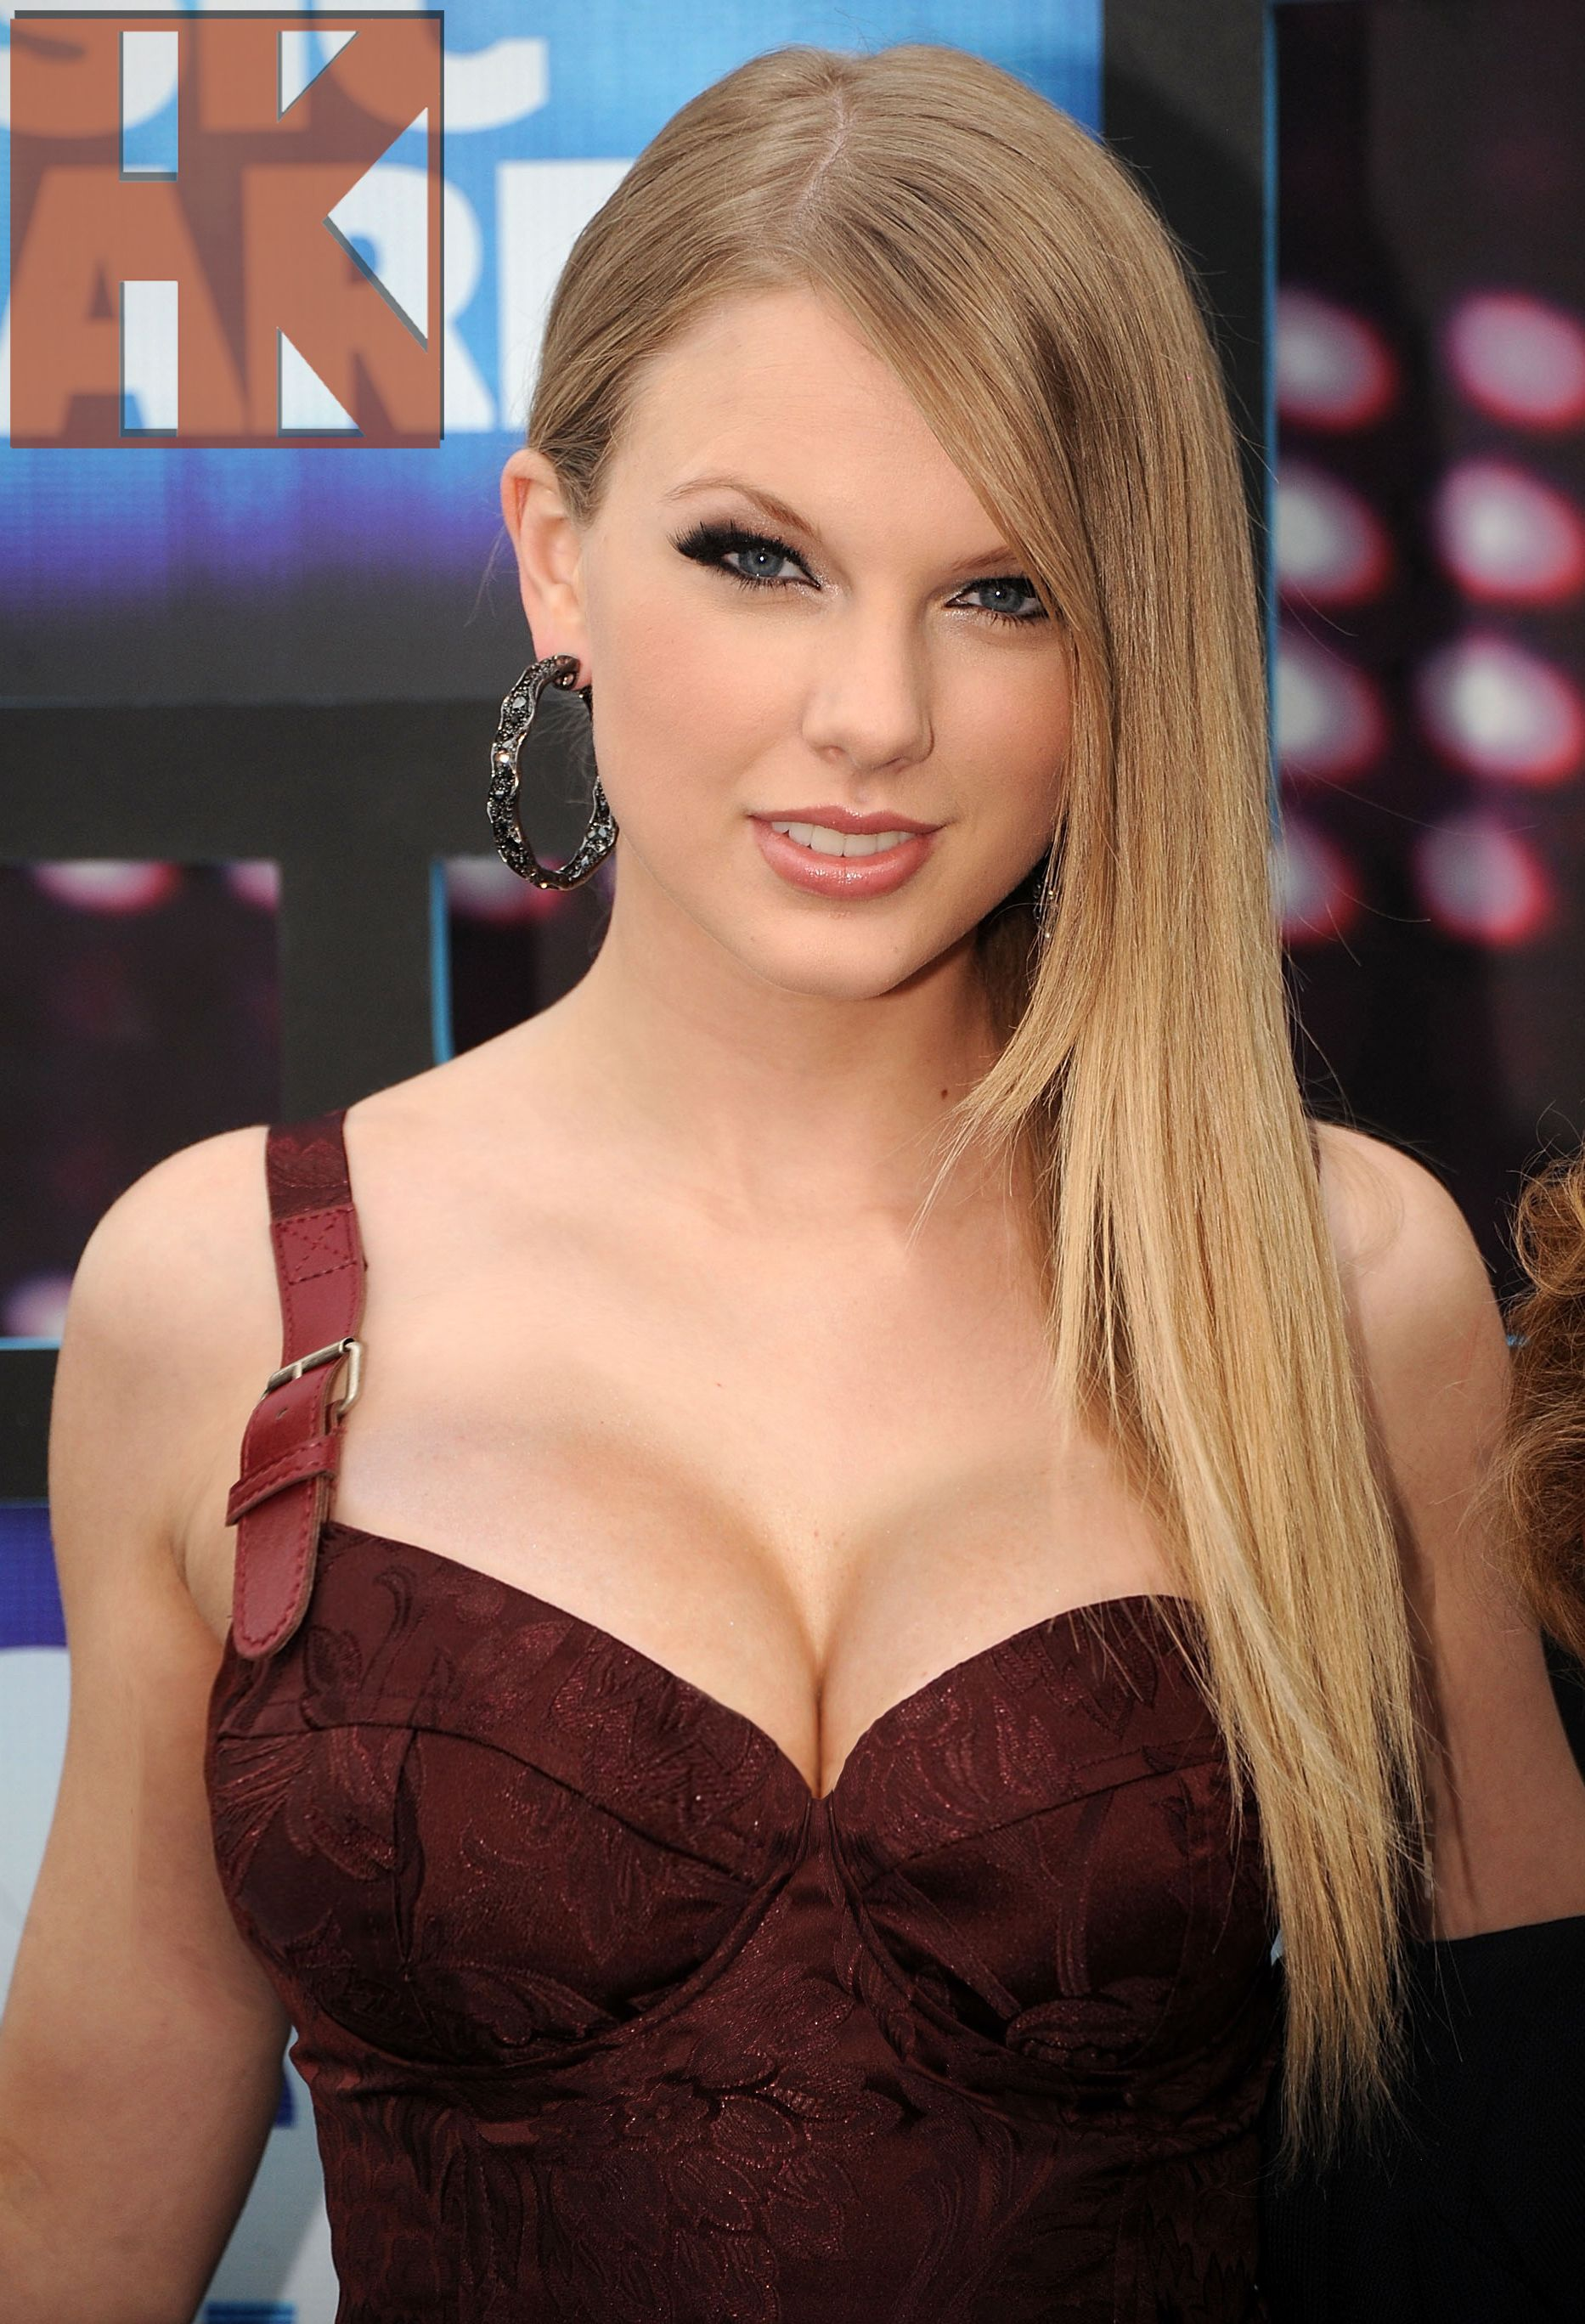 Request: Taylor Swift (Breast Expansion) by hskfmn on DeviantArt